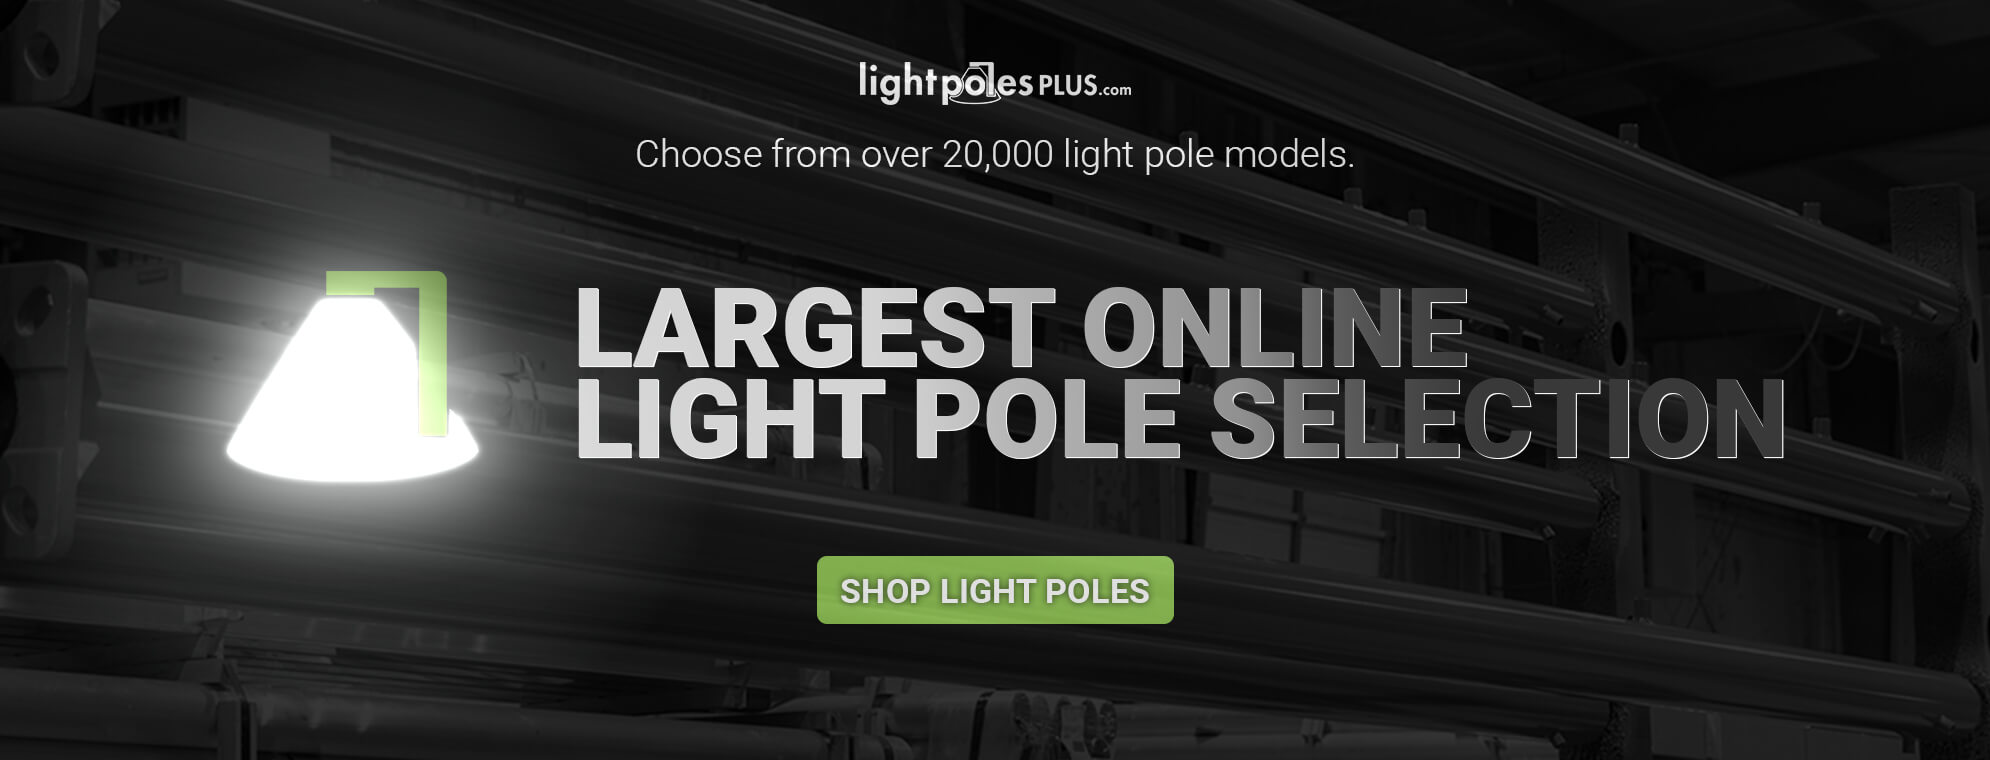 Largest Online Light Pole Selection